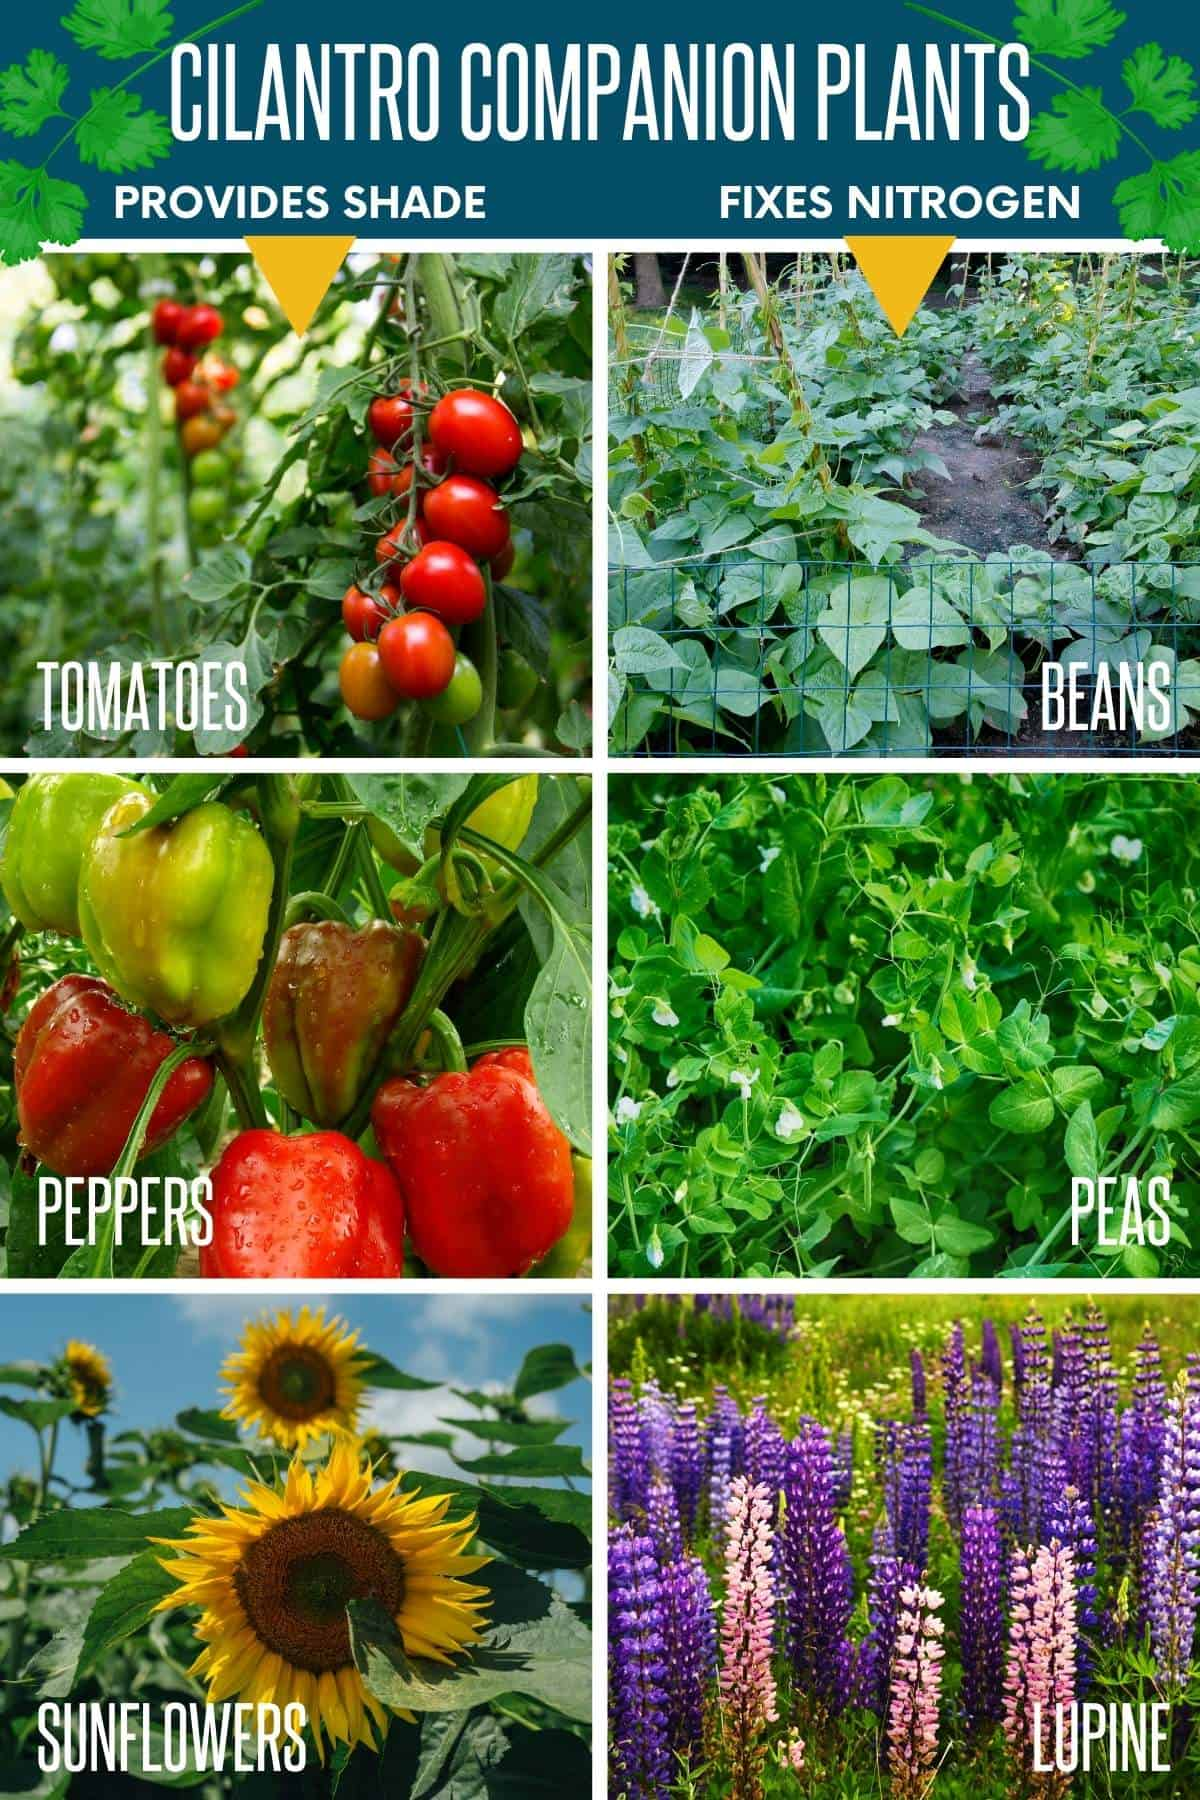 Split image showing various companion plants for cilantro: tomatoes, beans, peppers, peas, sunflowers, and lupine.